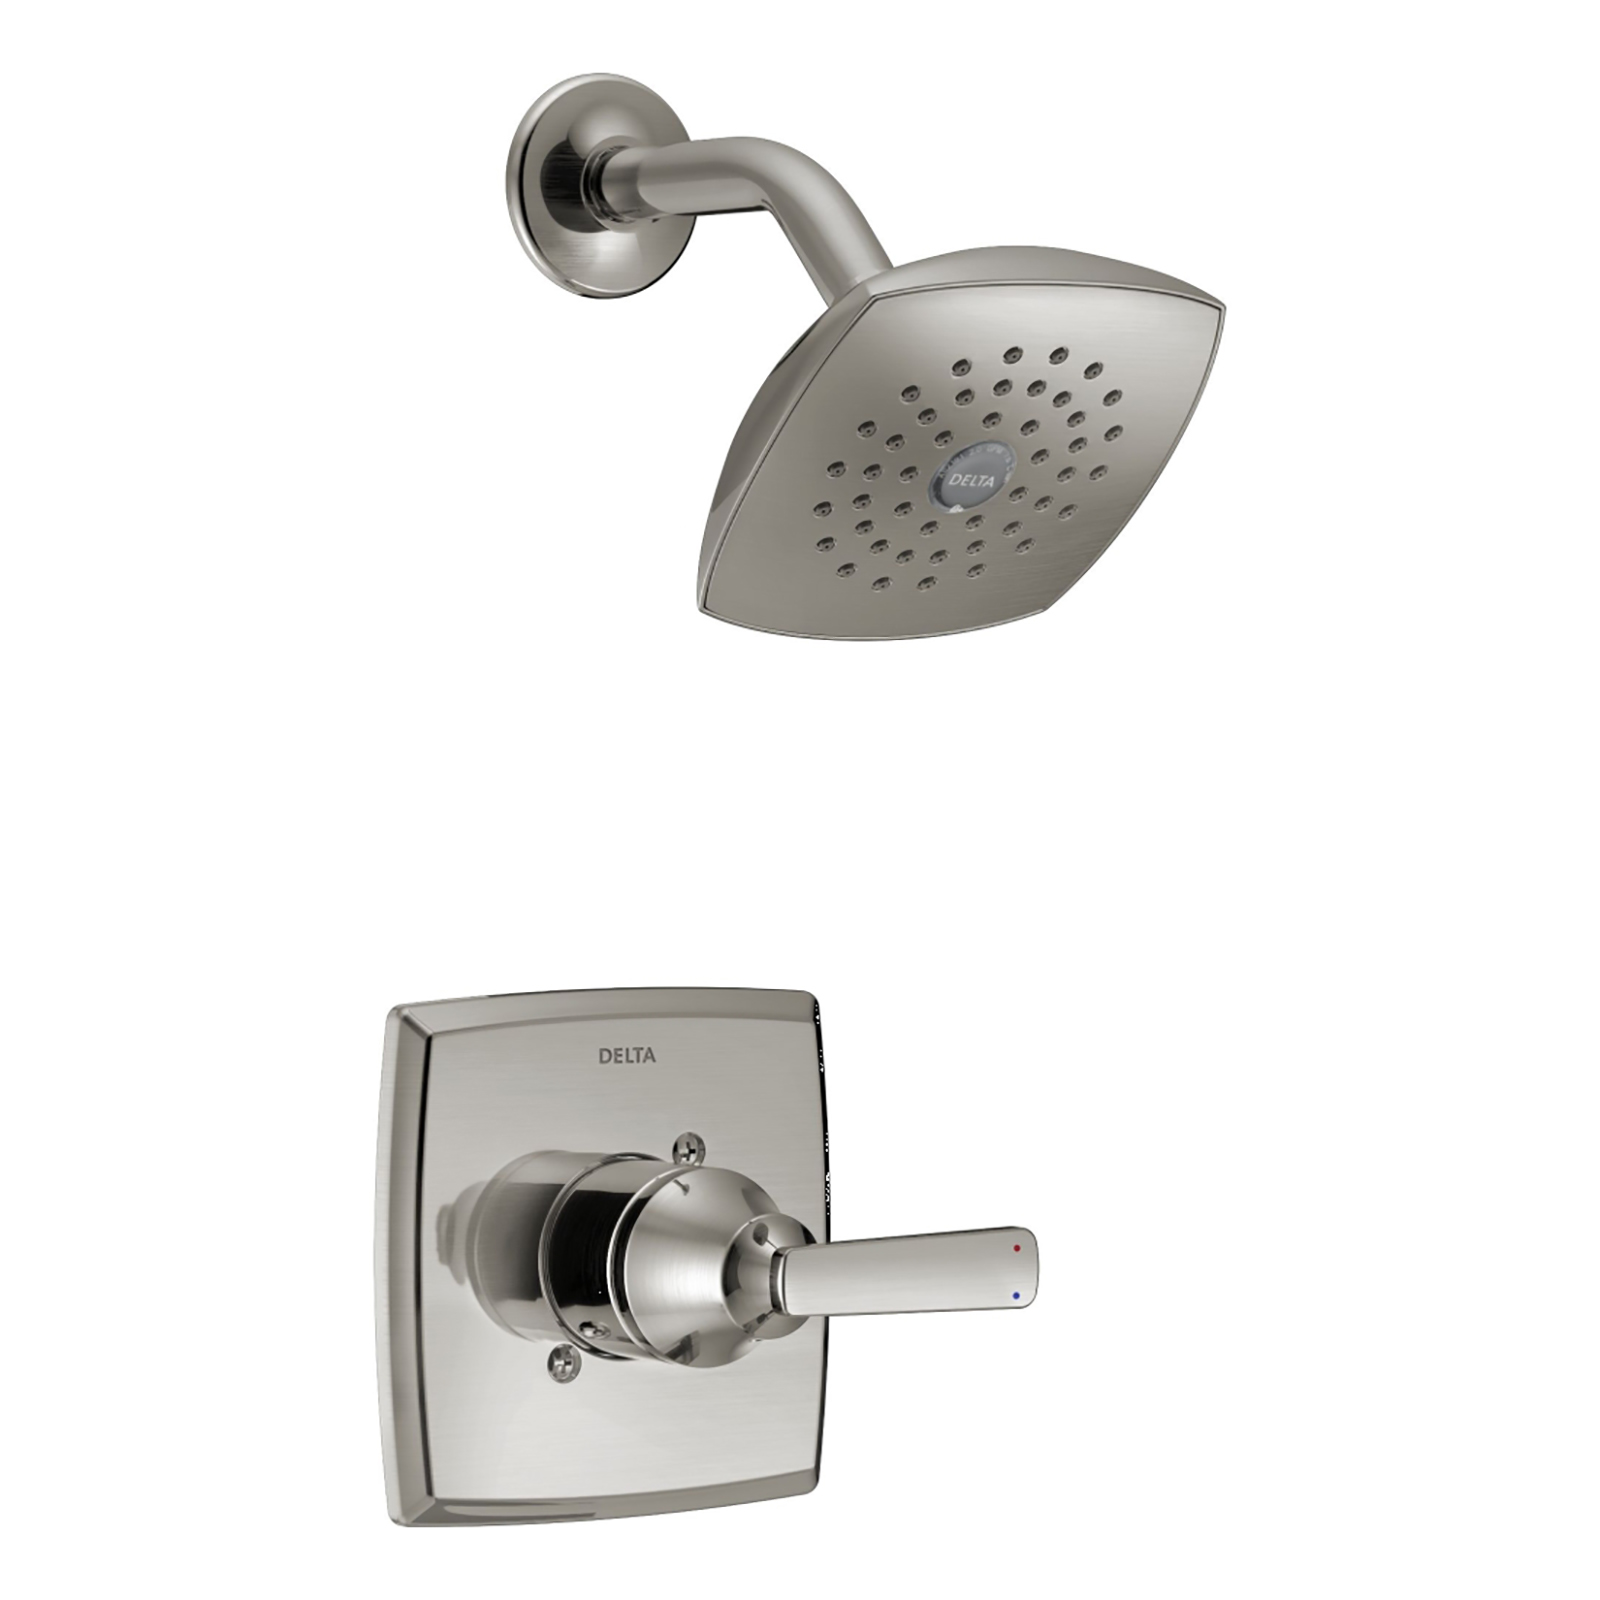 Delta Faucet Ashlyn 6 Shower Faucet Trim Kit Sears